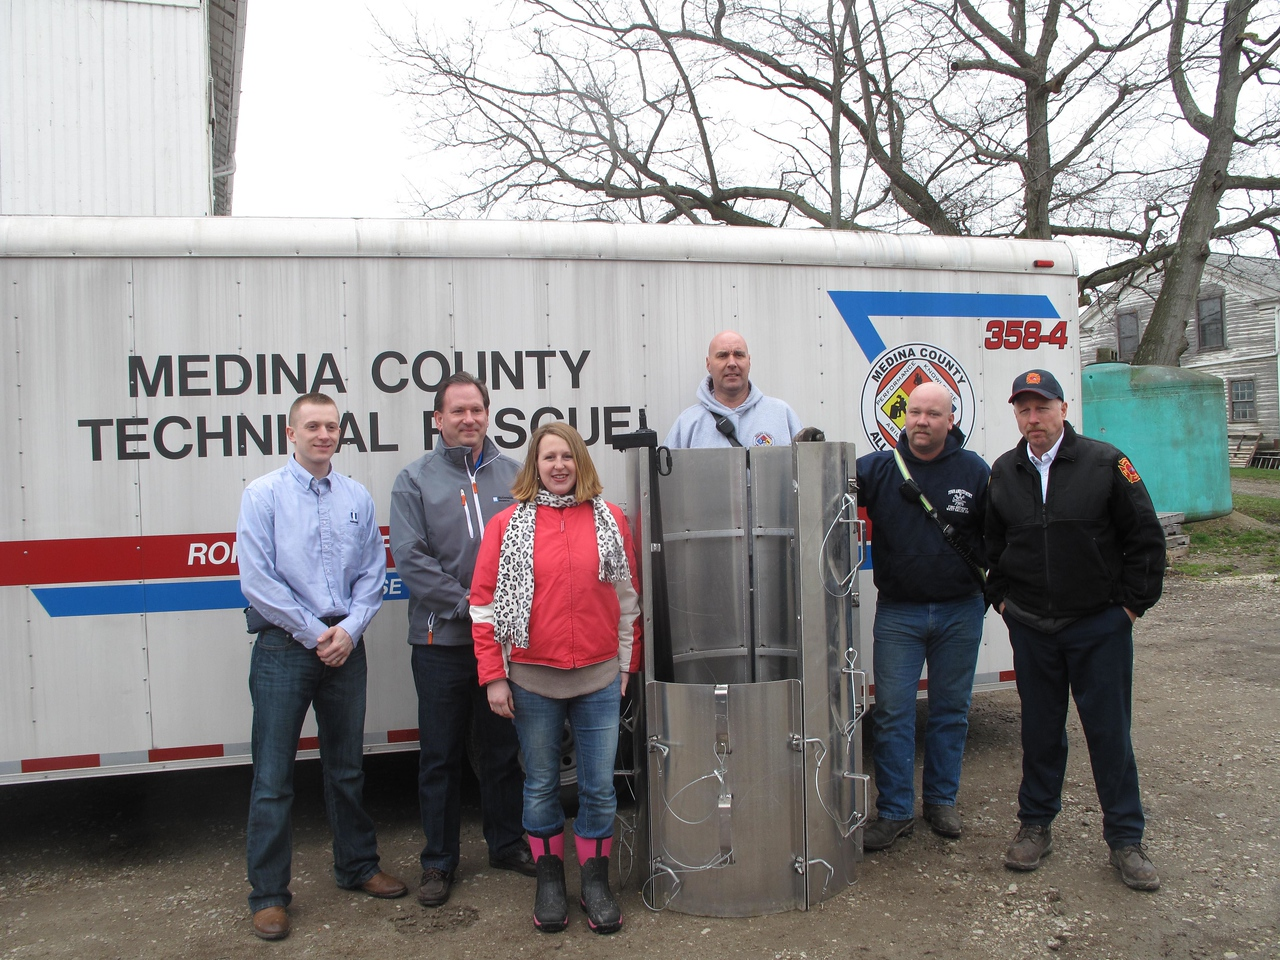 ELIZABETH DOBBINS / GAZETTE Trent Insurance Group agent Travis Mills, Trent Insurance Group agent Greg Trent, Medina County Farm Bureau President Sarah Poling, Brunwsik firefighter and technical rescue team liaison Wally Sobczyk, Chatham Firefighter and member of the Medina County All Hazards Team Jon Ulferts and Chatham Fire Chief Bill Disbrow stand near one of the new rescue tubes.